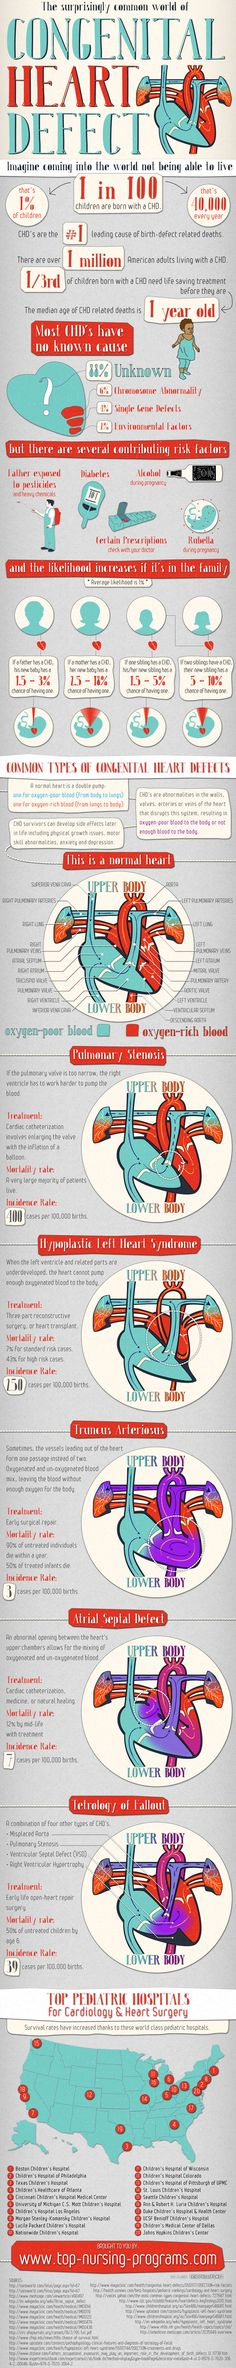 The Surprisingly Common World Of Heart Defects #Infographic #Health #HeartDefects